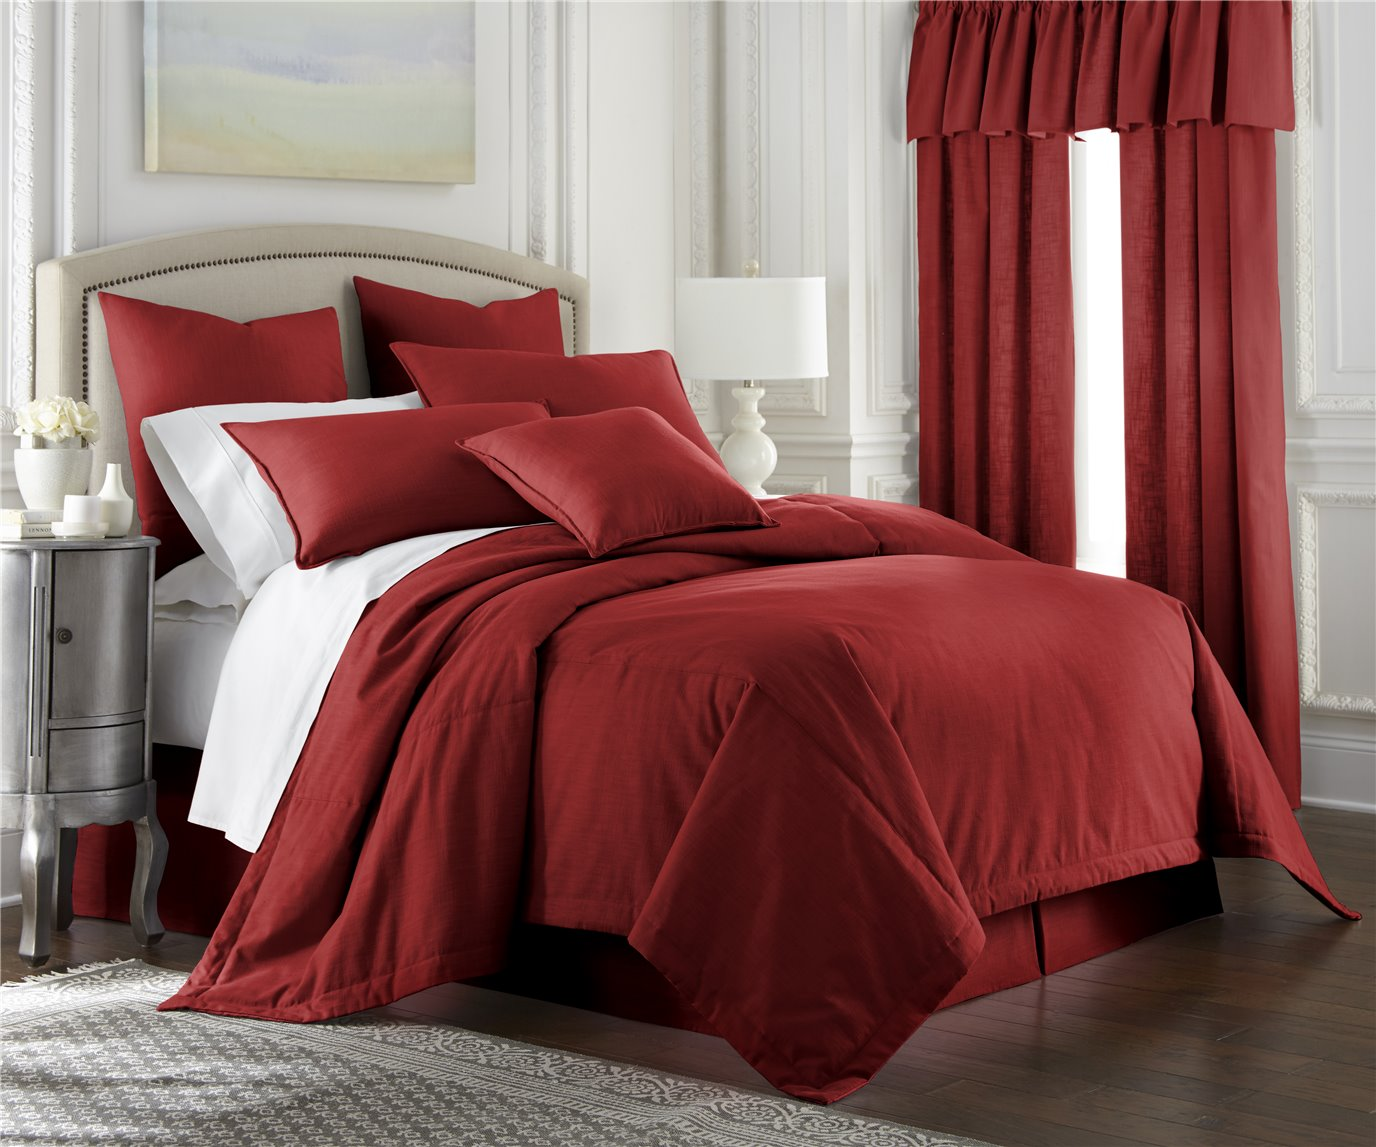 Cambric Red Comforter Super King